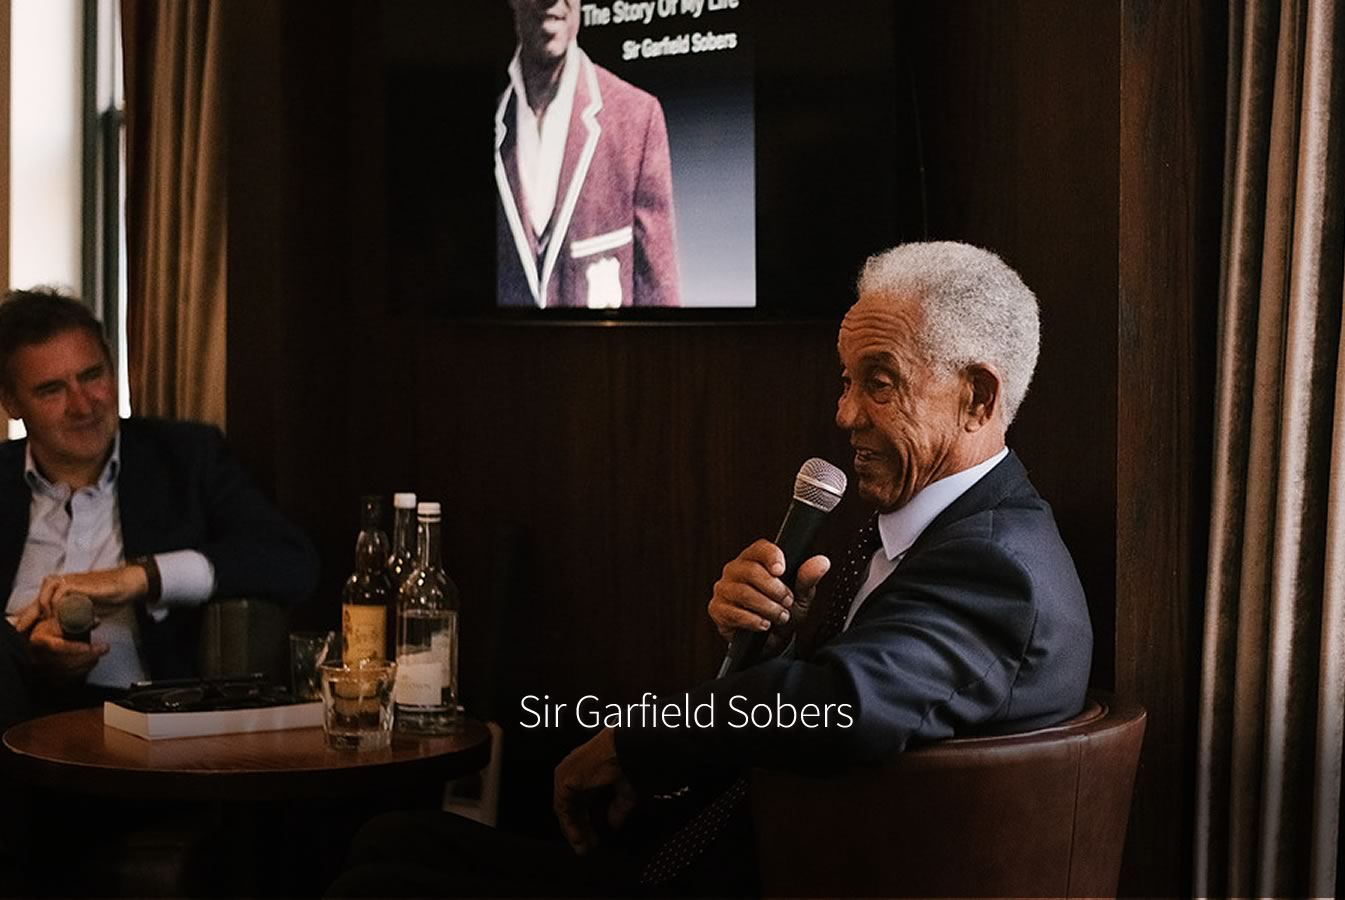 CowCorner Events and Sir Garfield Sobers